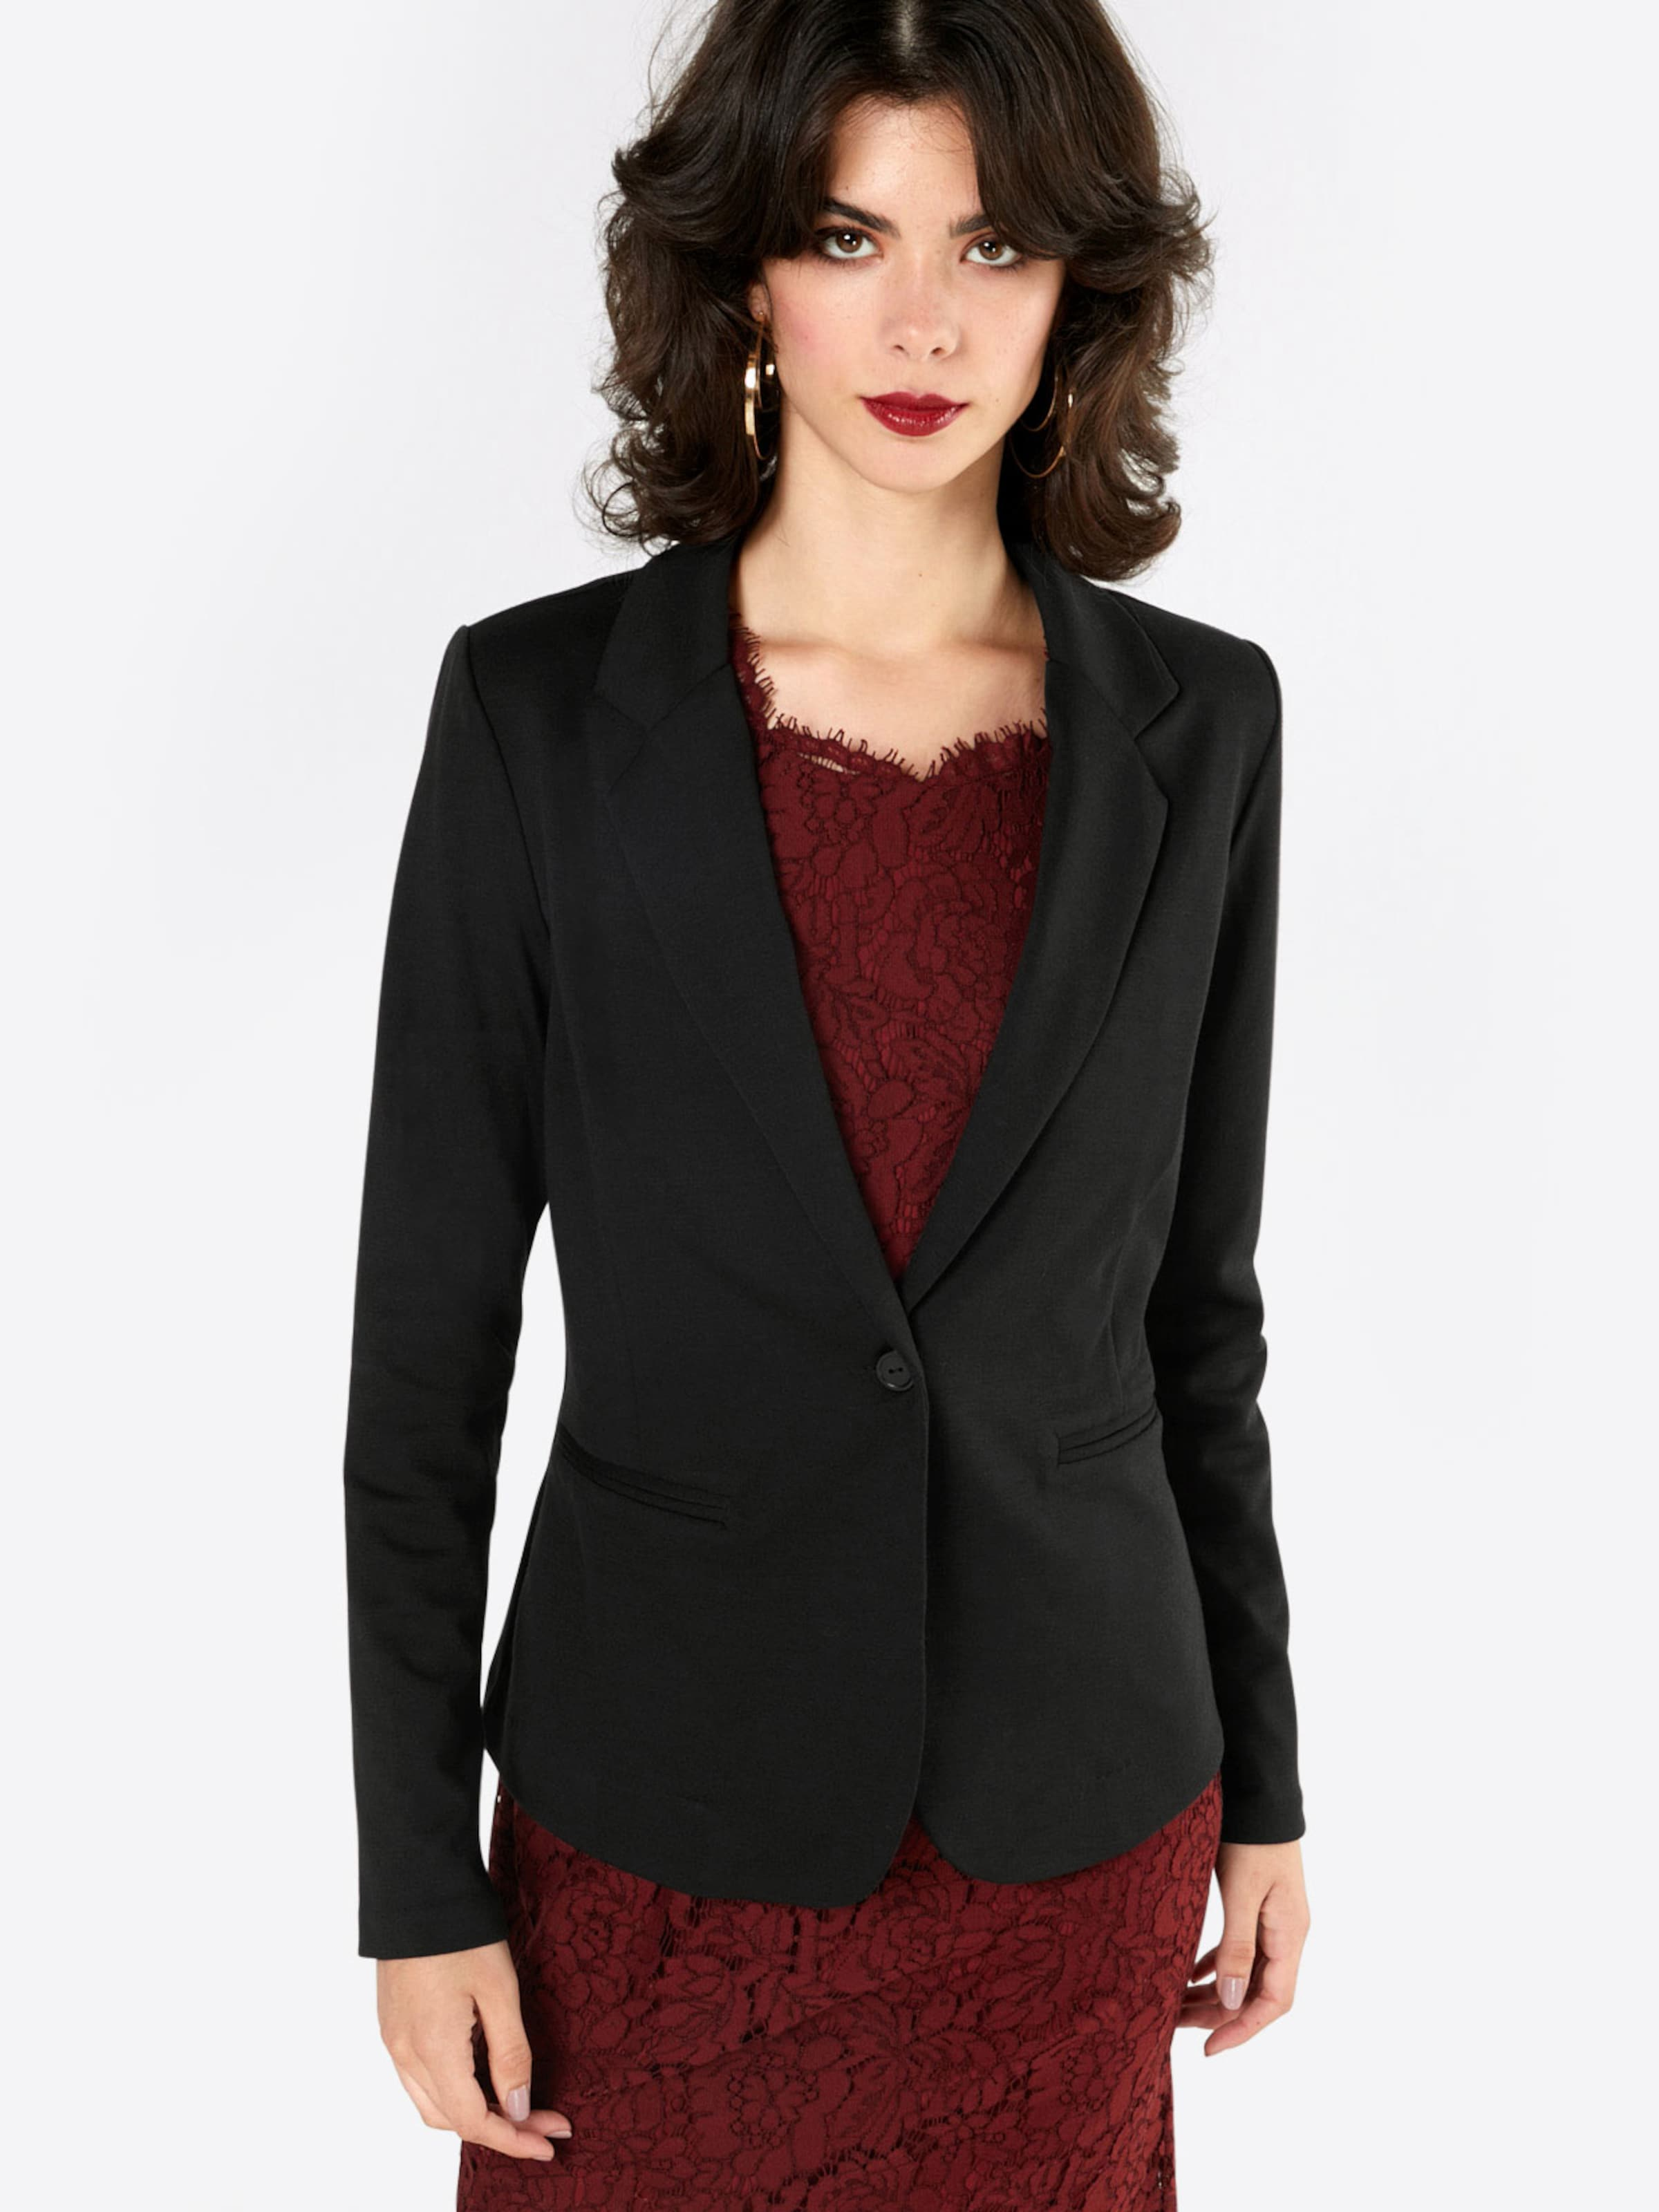 Blazer Sweat ICHI Sweat Blazer ICHI Sweat 'Kate' 'Kate' ICHI 'Kate' Blazer qqU8zA64